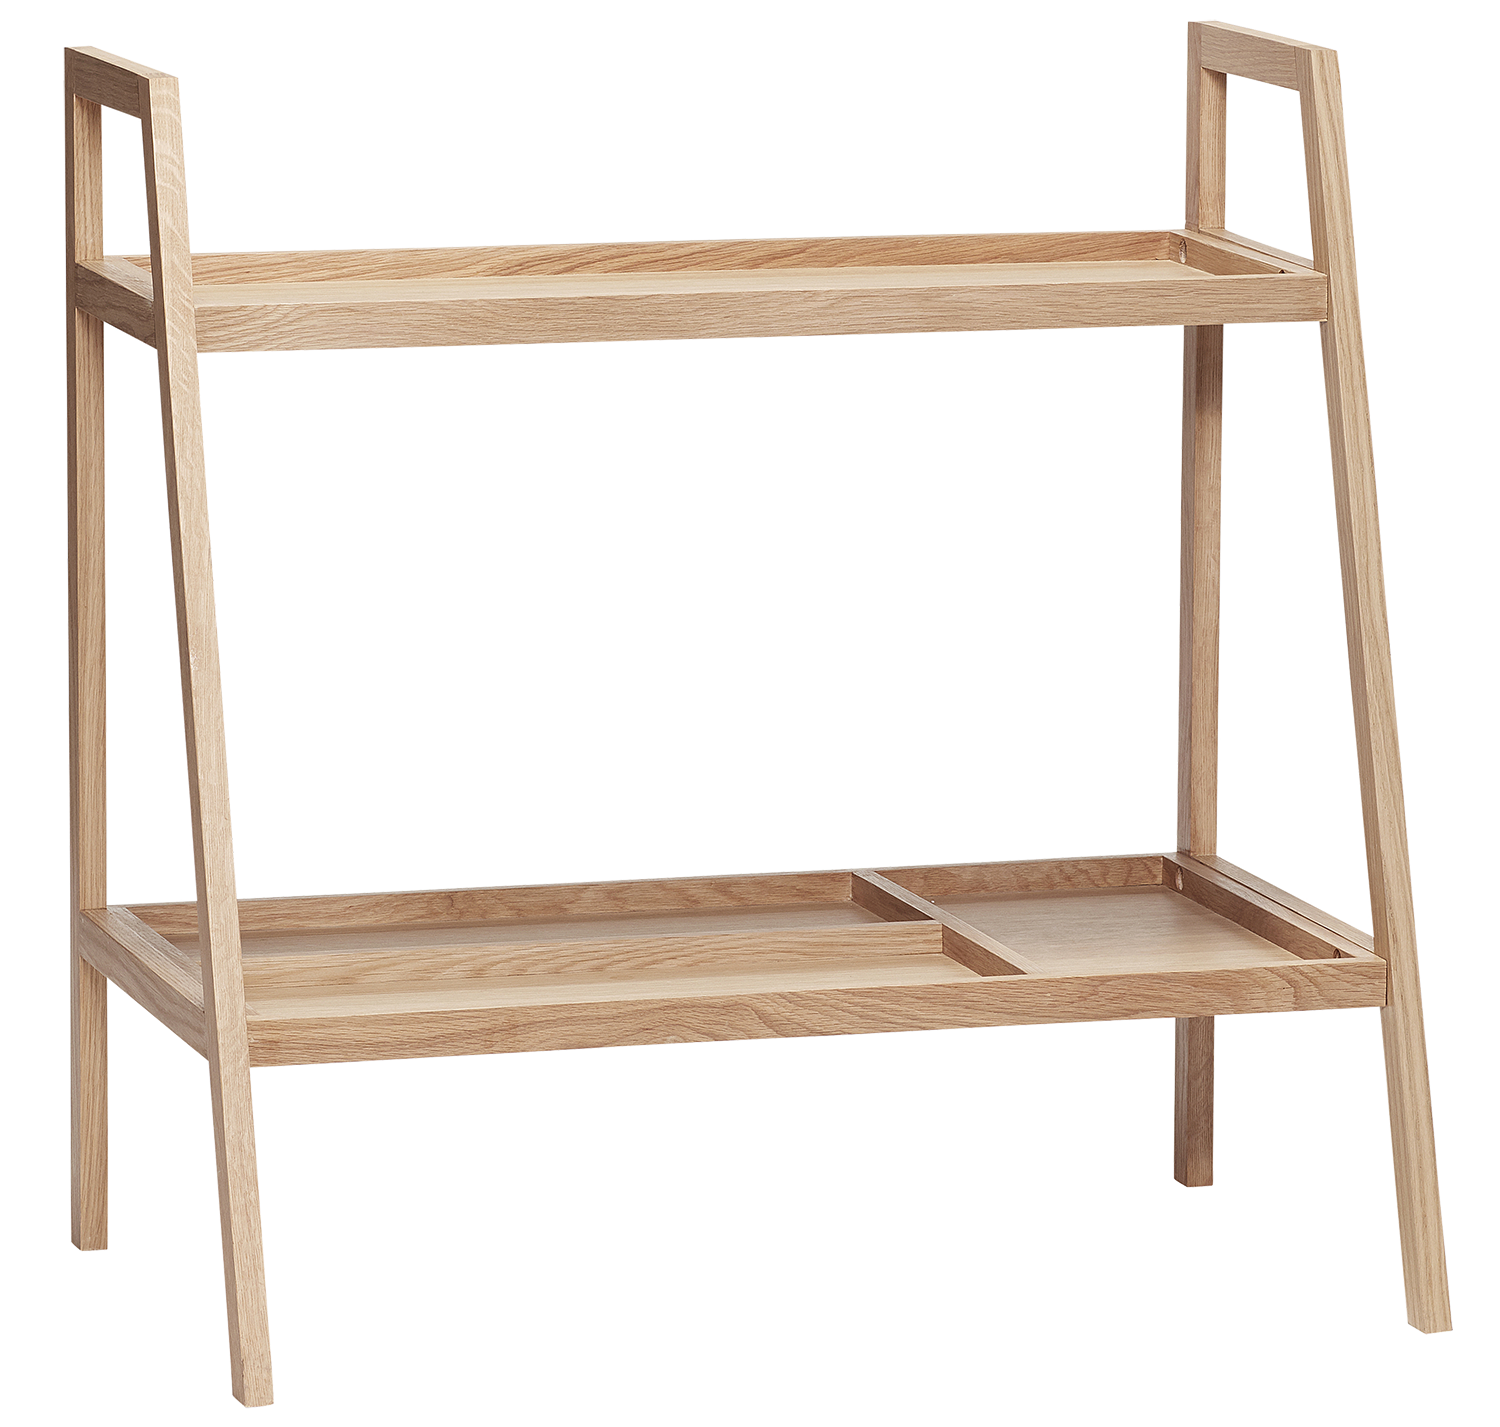 Hubsch Multilayered Shelving Unit In Tan, Natural Oak Frame With Two Shelves